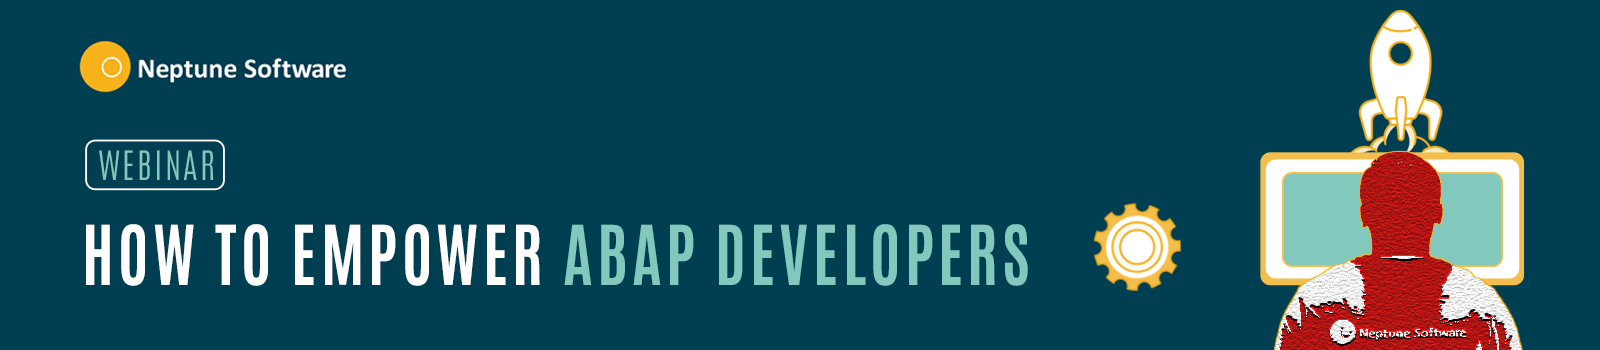 Empower ABAP Developers